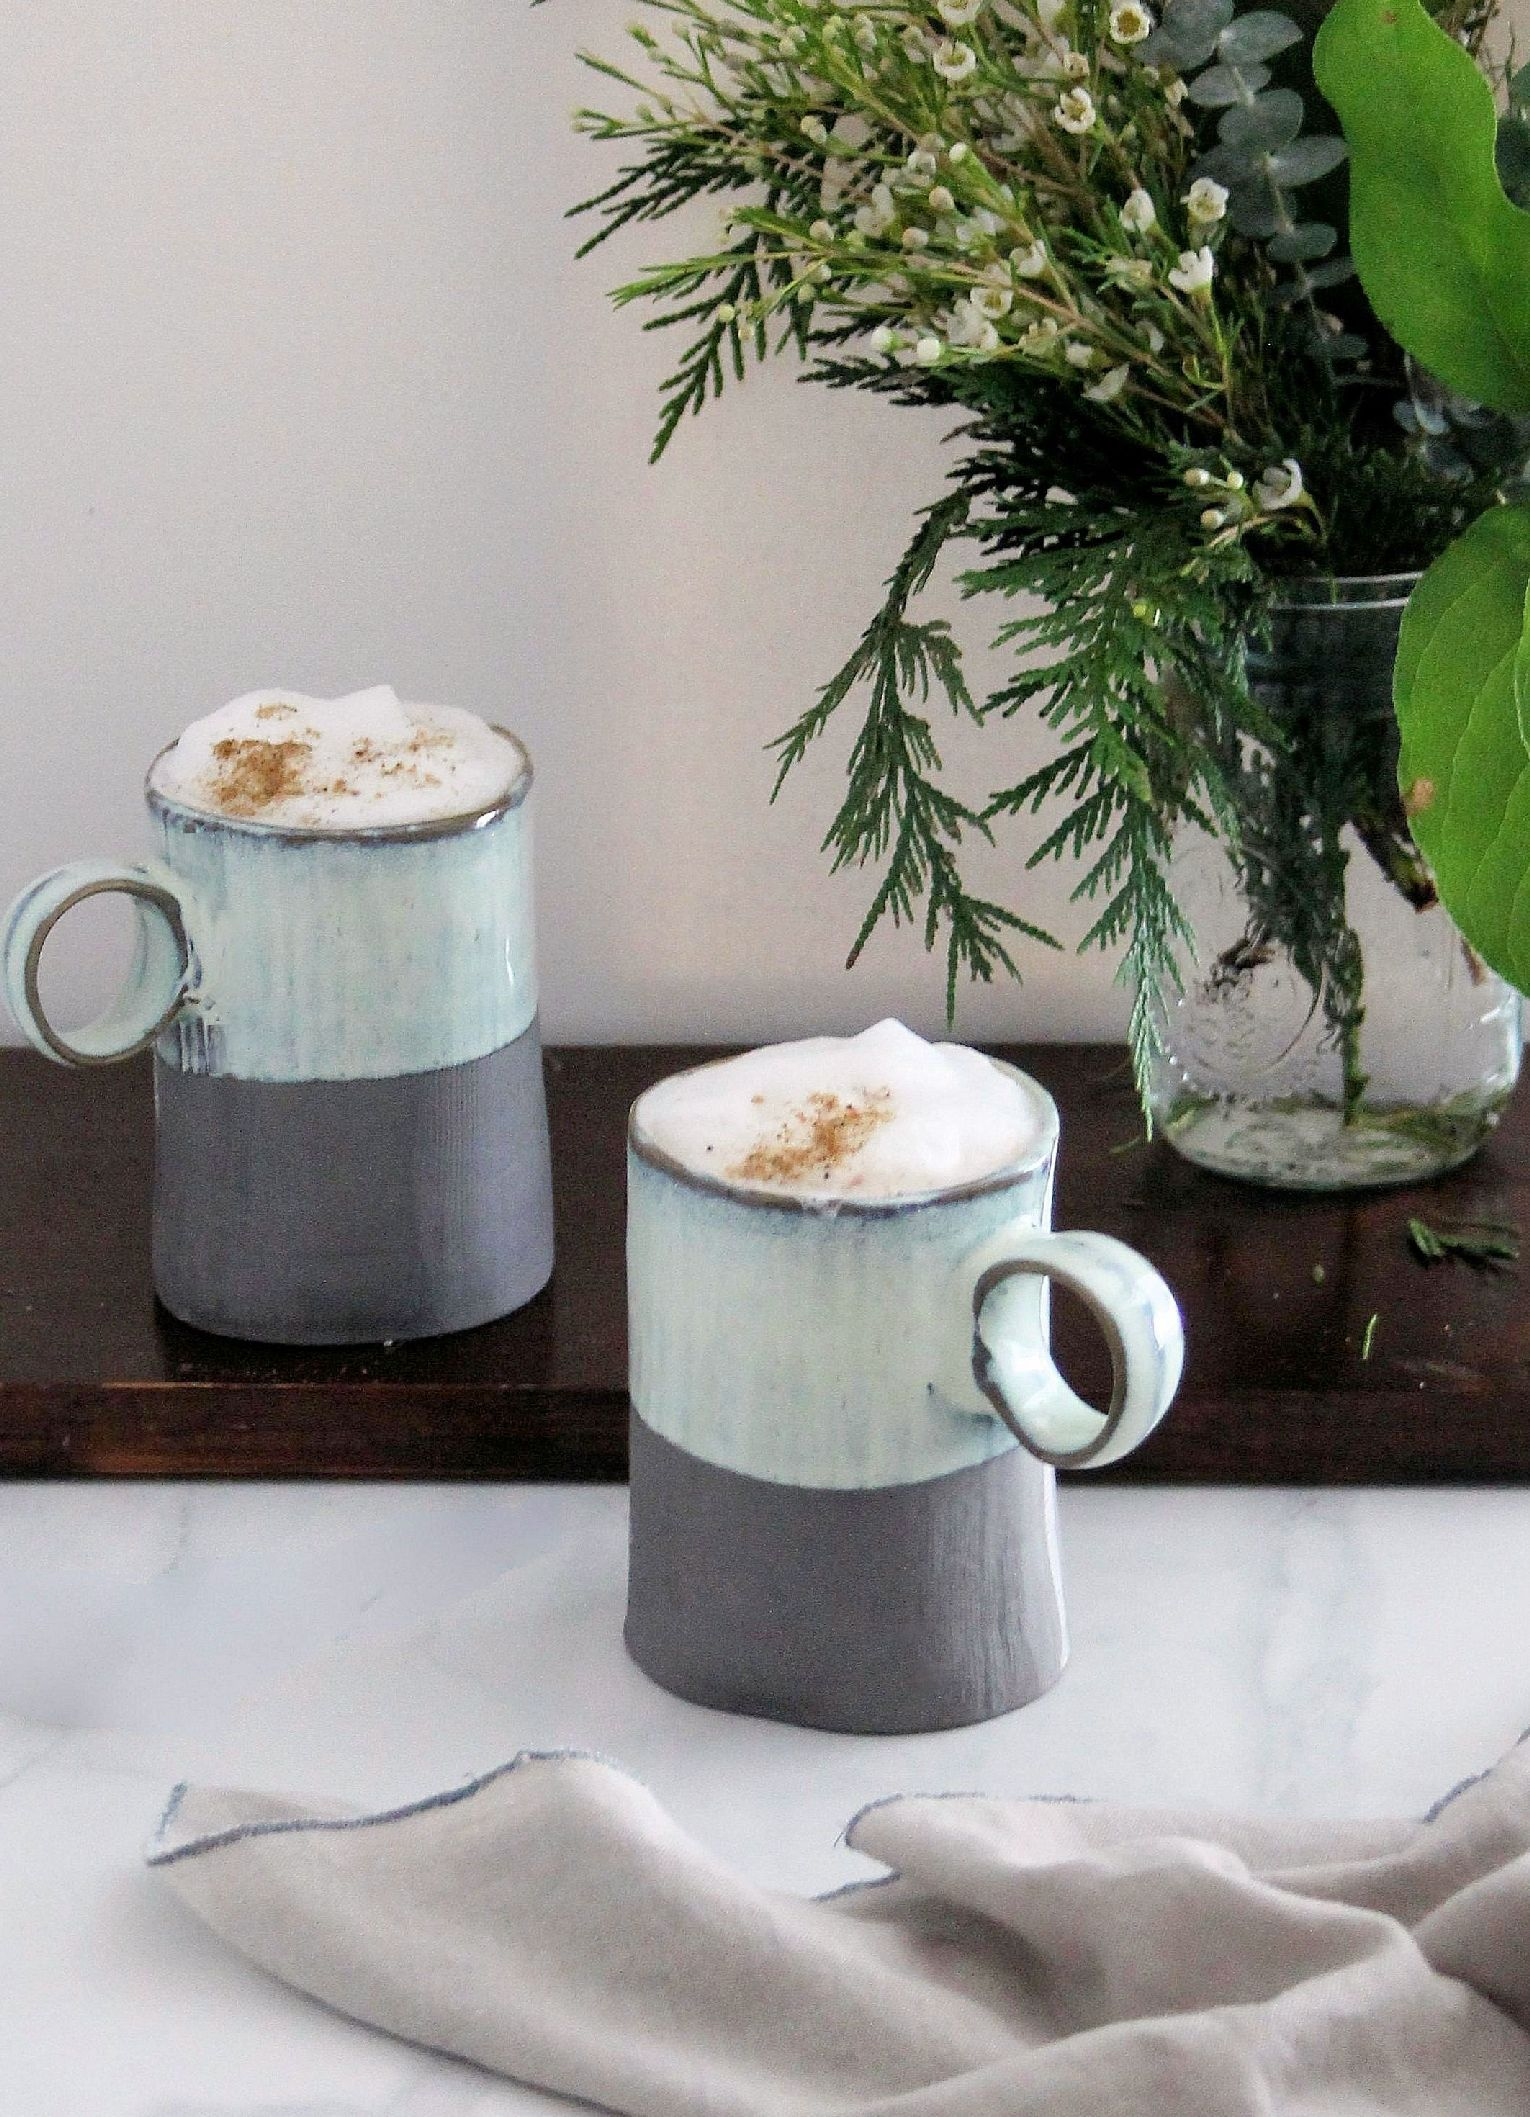 London fog earl grey latte the secret to frothing milk whether you try this early grey latte or experiment with your own i hope you have fun and find a method that works best for you solutioingenieria Images